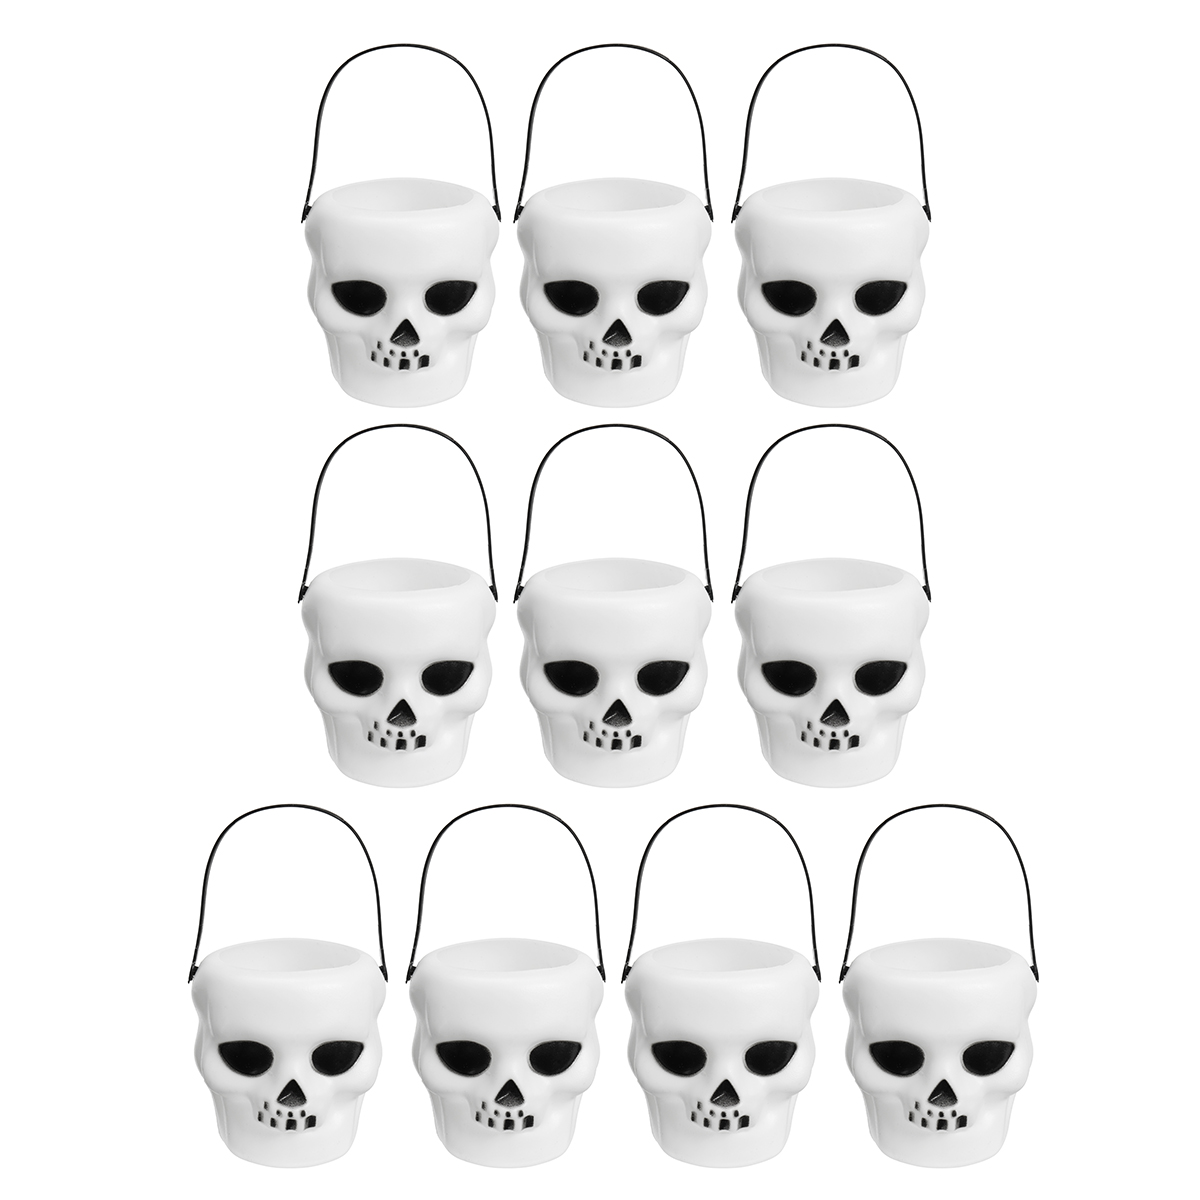 10pcs Halloween Cauldron Witch Skull Multi Purposed Candy Holder Planter Pot Party Decorations